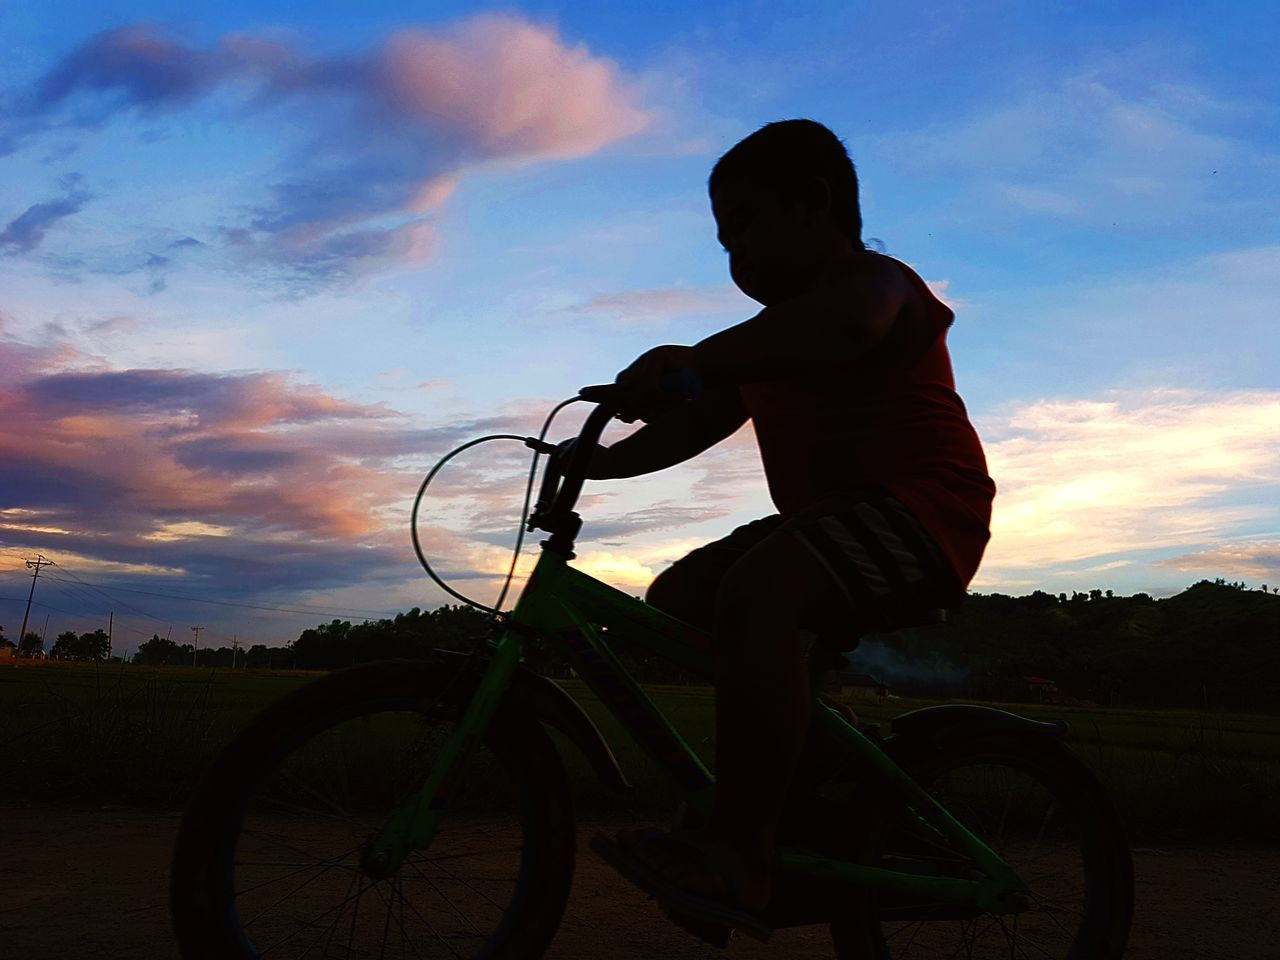 bicycle, real people, transportation, sky, one person, sunset, cycling, mode of transport, land vehicle, silhouette, cloud - sky, men, lifestyles, riding, outdoors, leisure activity, bmx cycling, nature, mountain bike, full length, day, cycling helmet, people